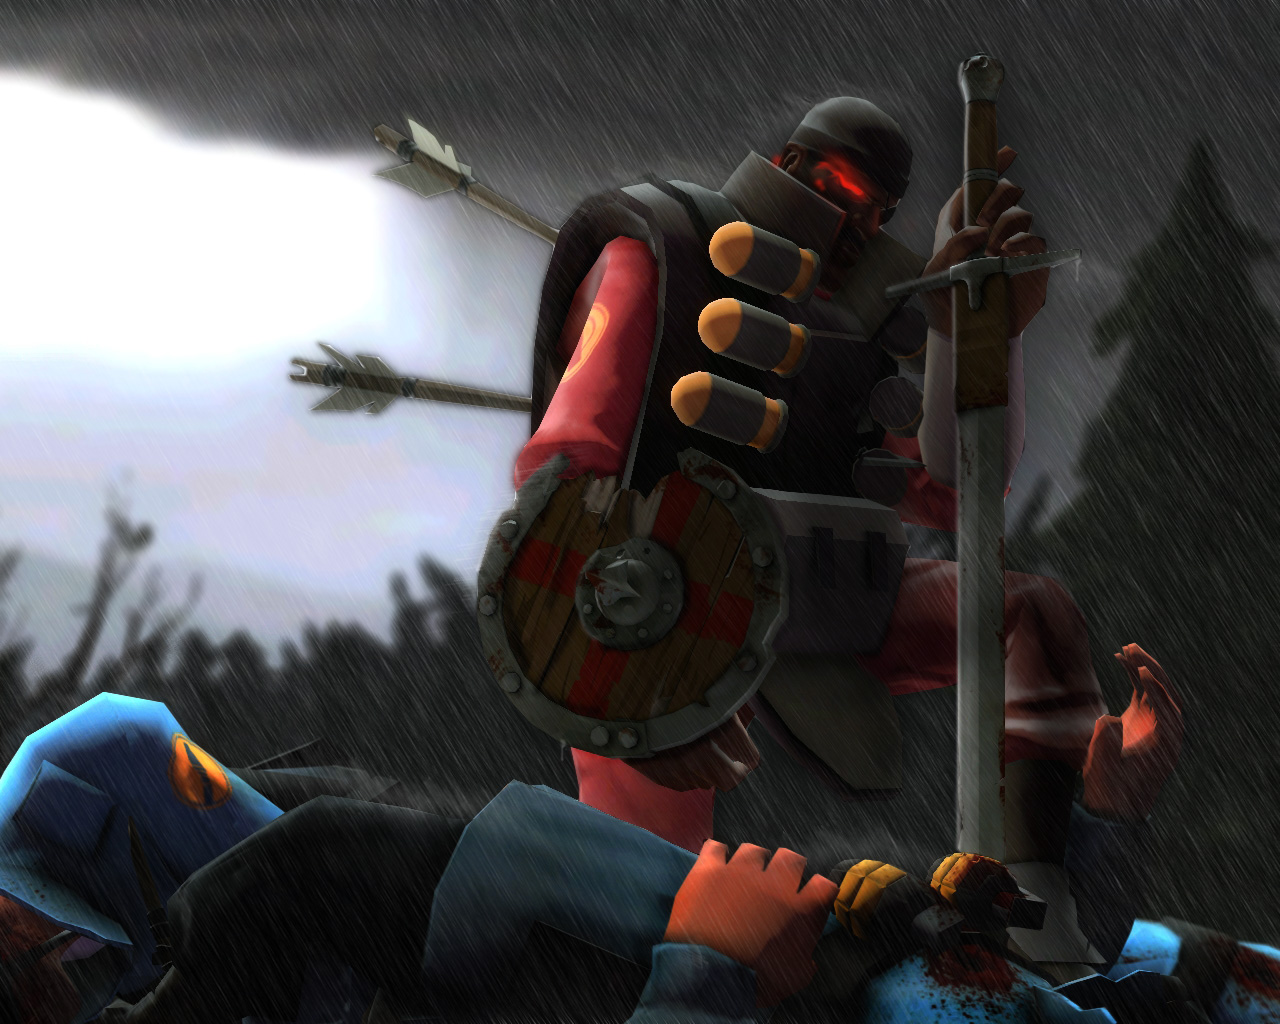 the soldier and the demoman team fortress 2  8f6ef1ad073525f7d895cd9484303b0d